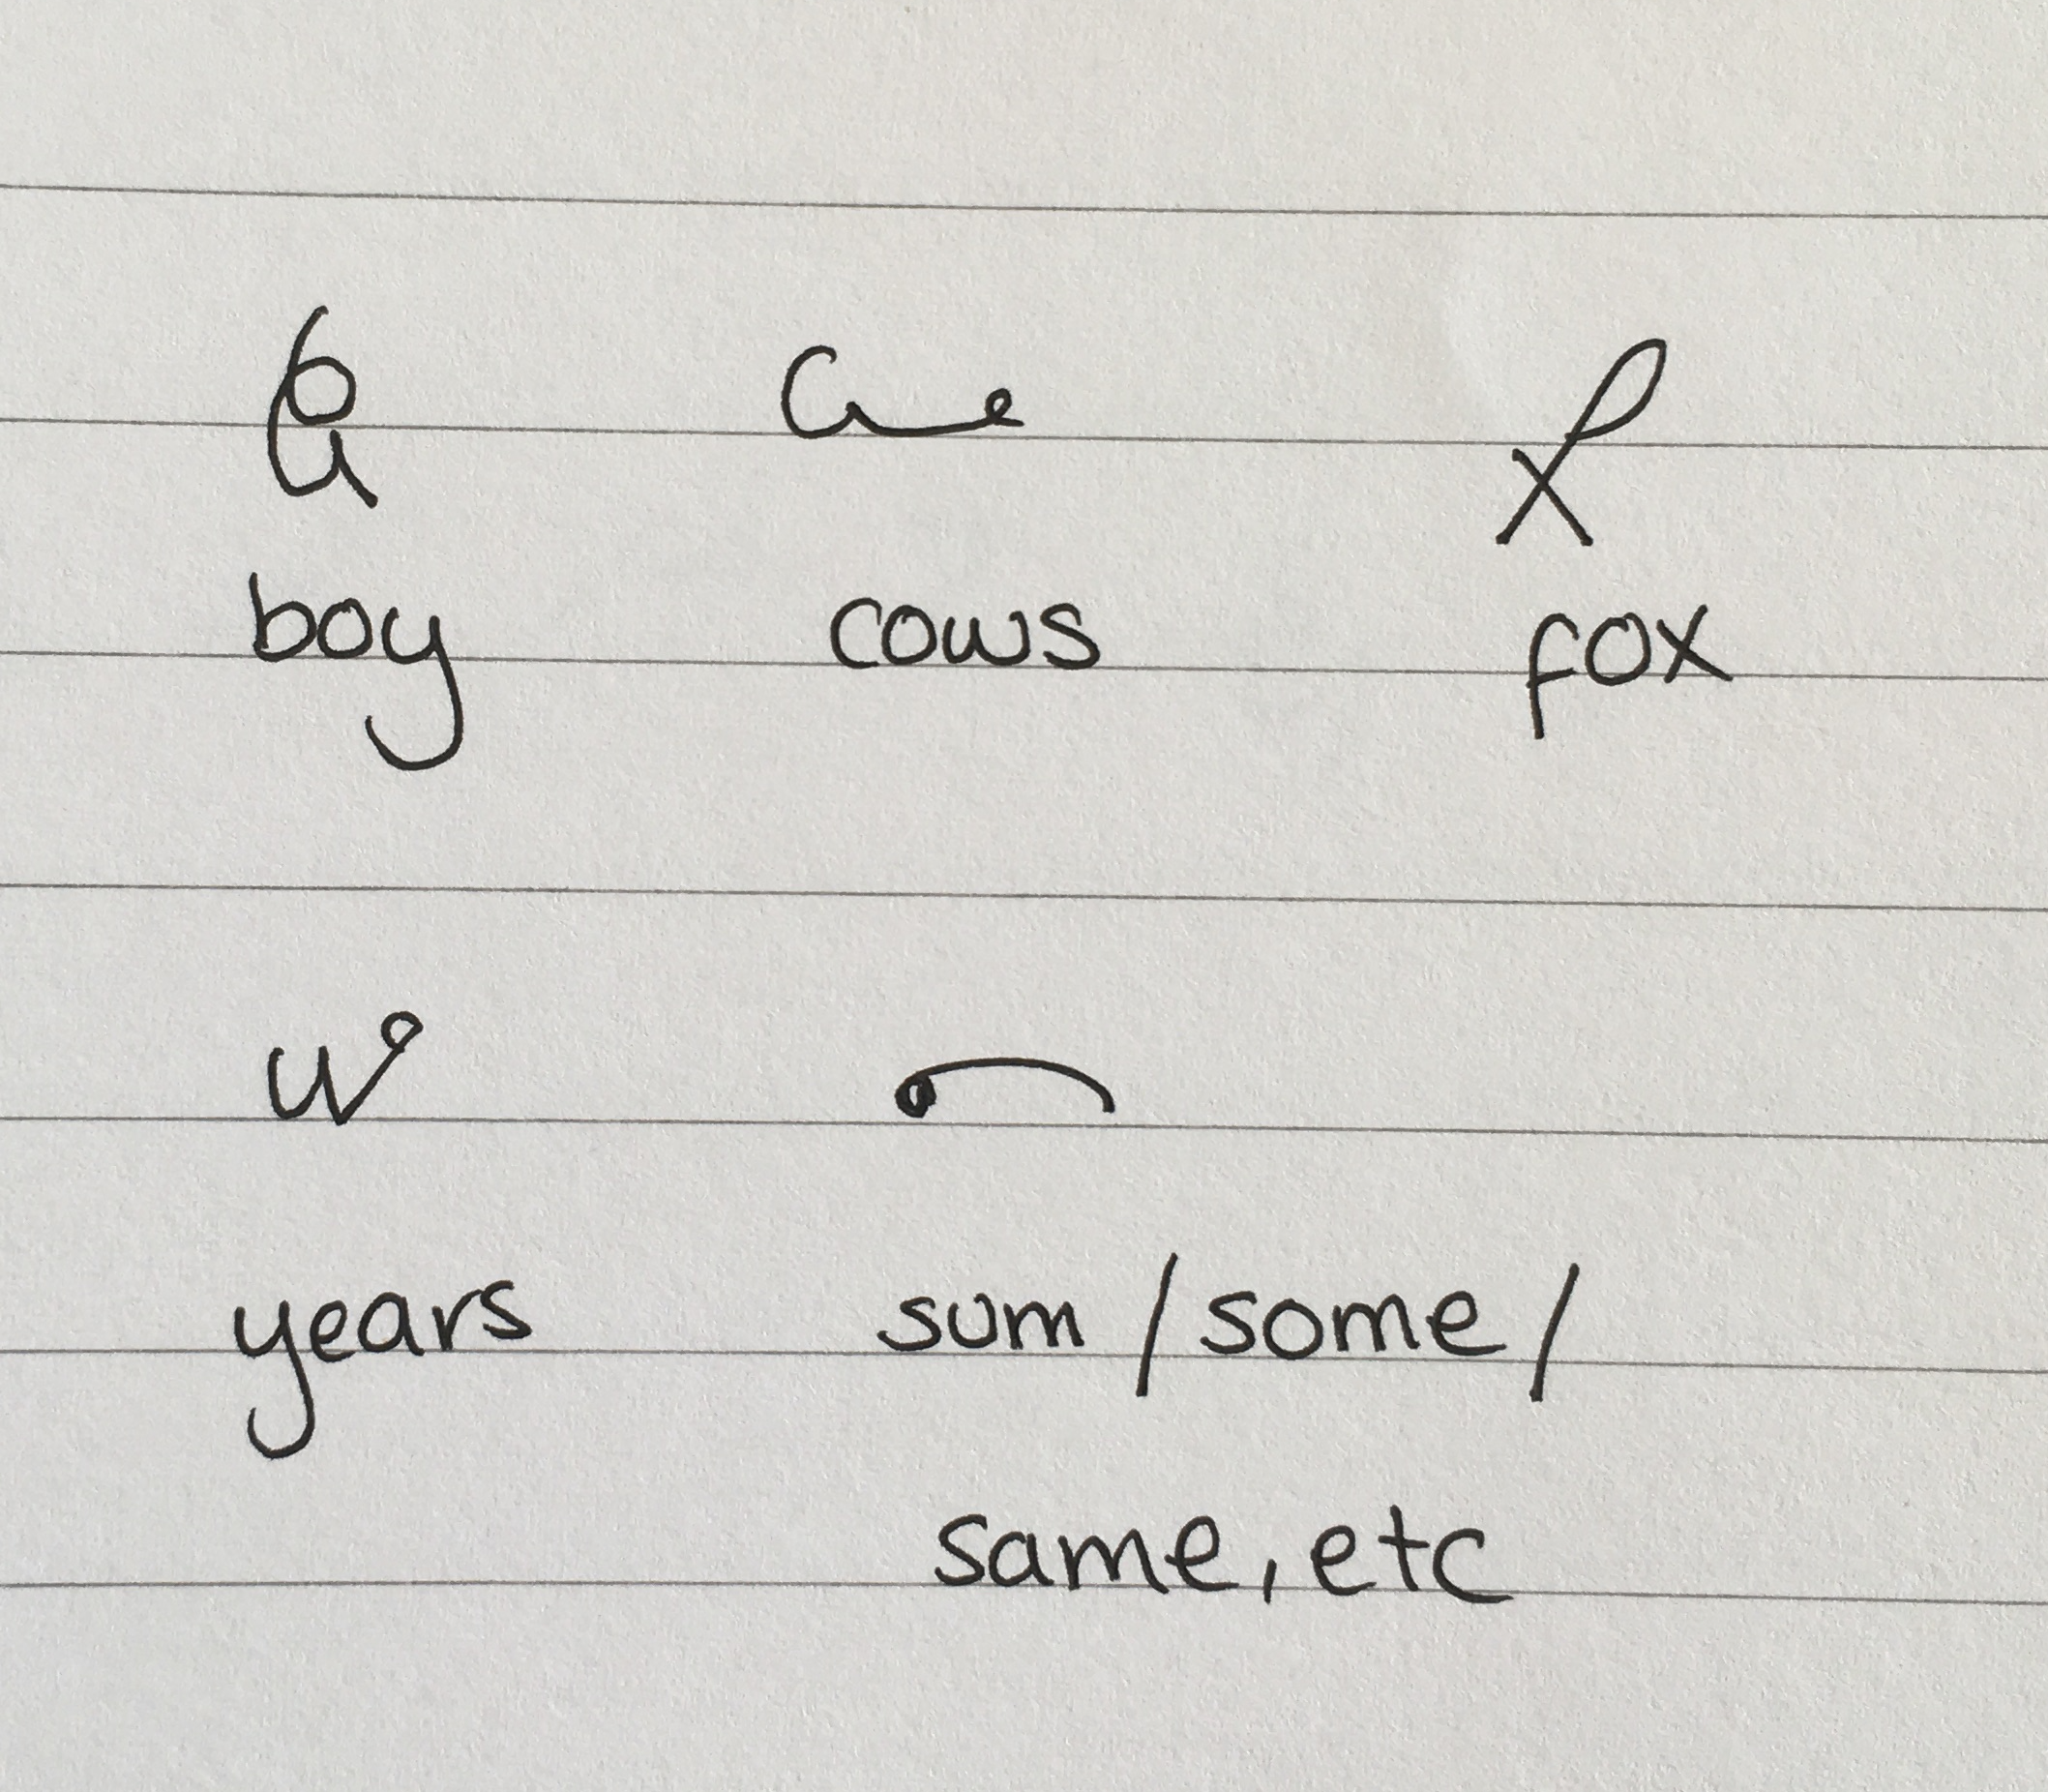 Examples of easy teeline shorthand word outlines